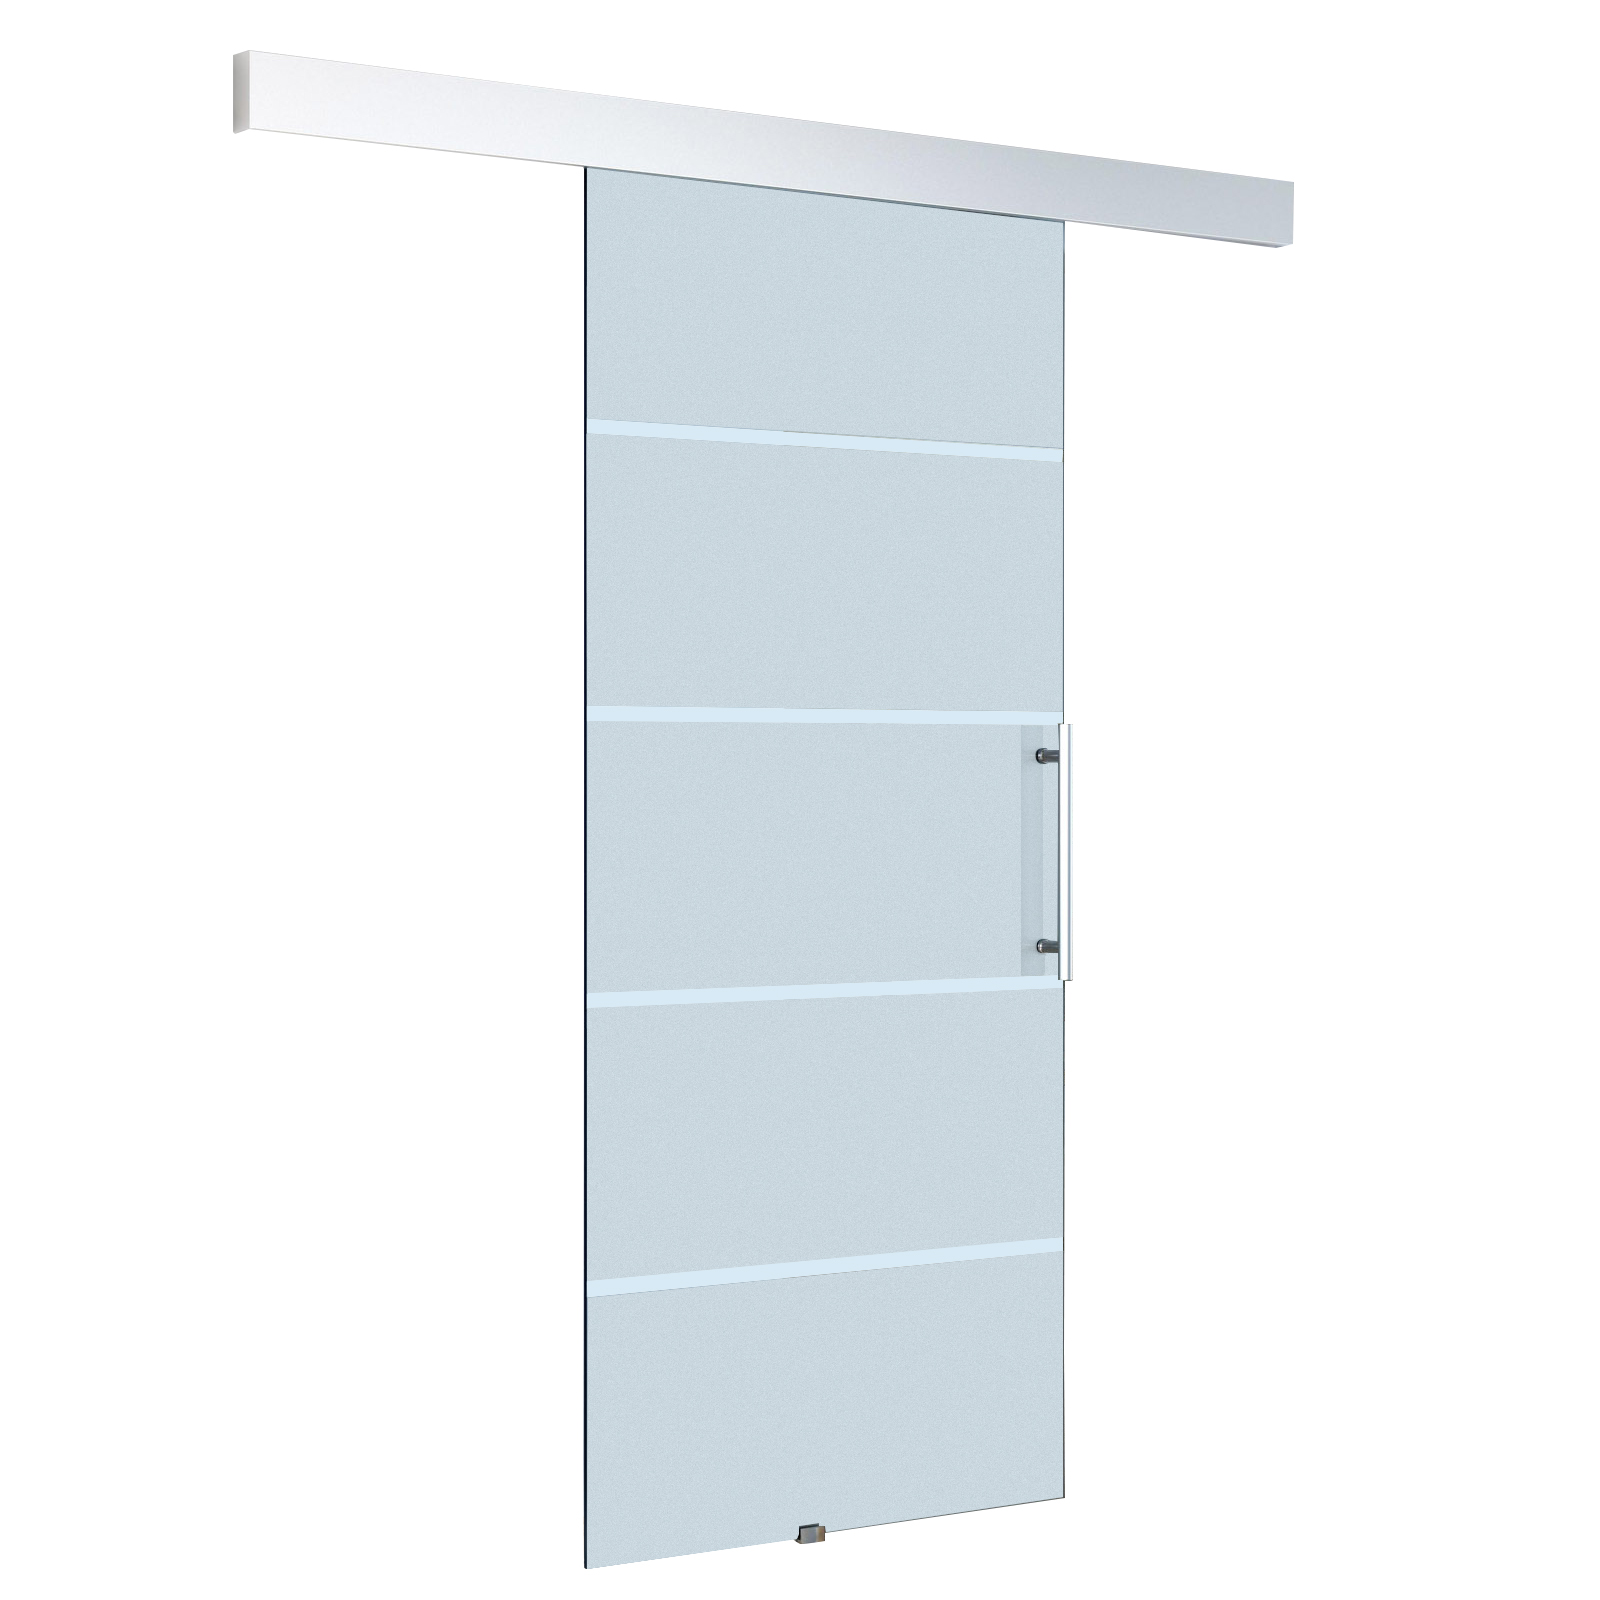 HOMCOM Sliding Door Interior Frosted Glass with Track and Handle for Bathroom Kitchen Study 205x77.5x0.8 CM image